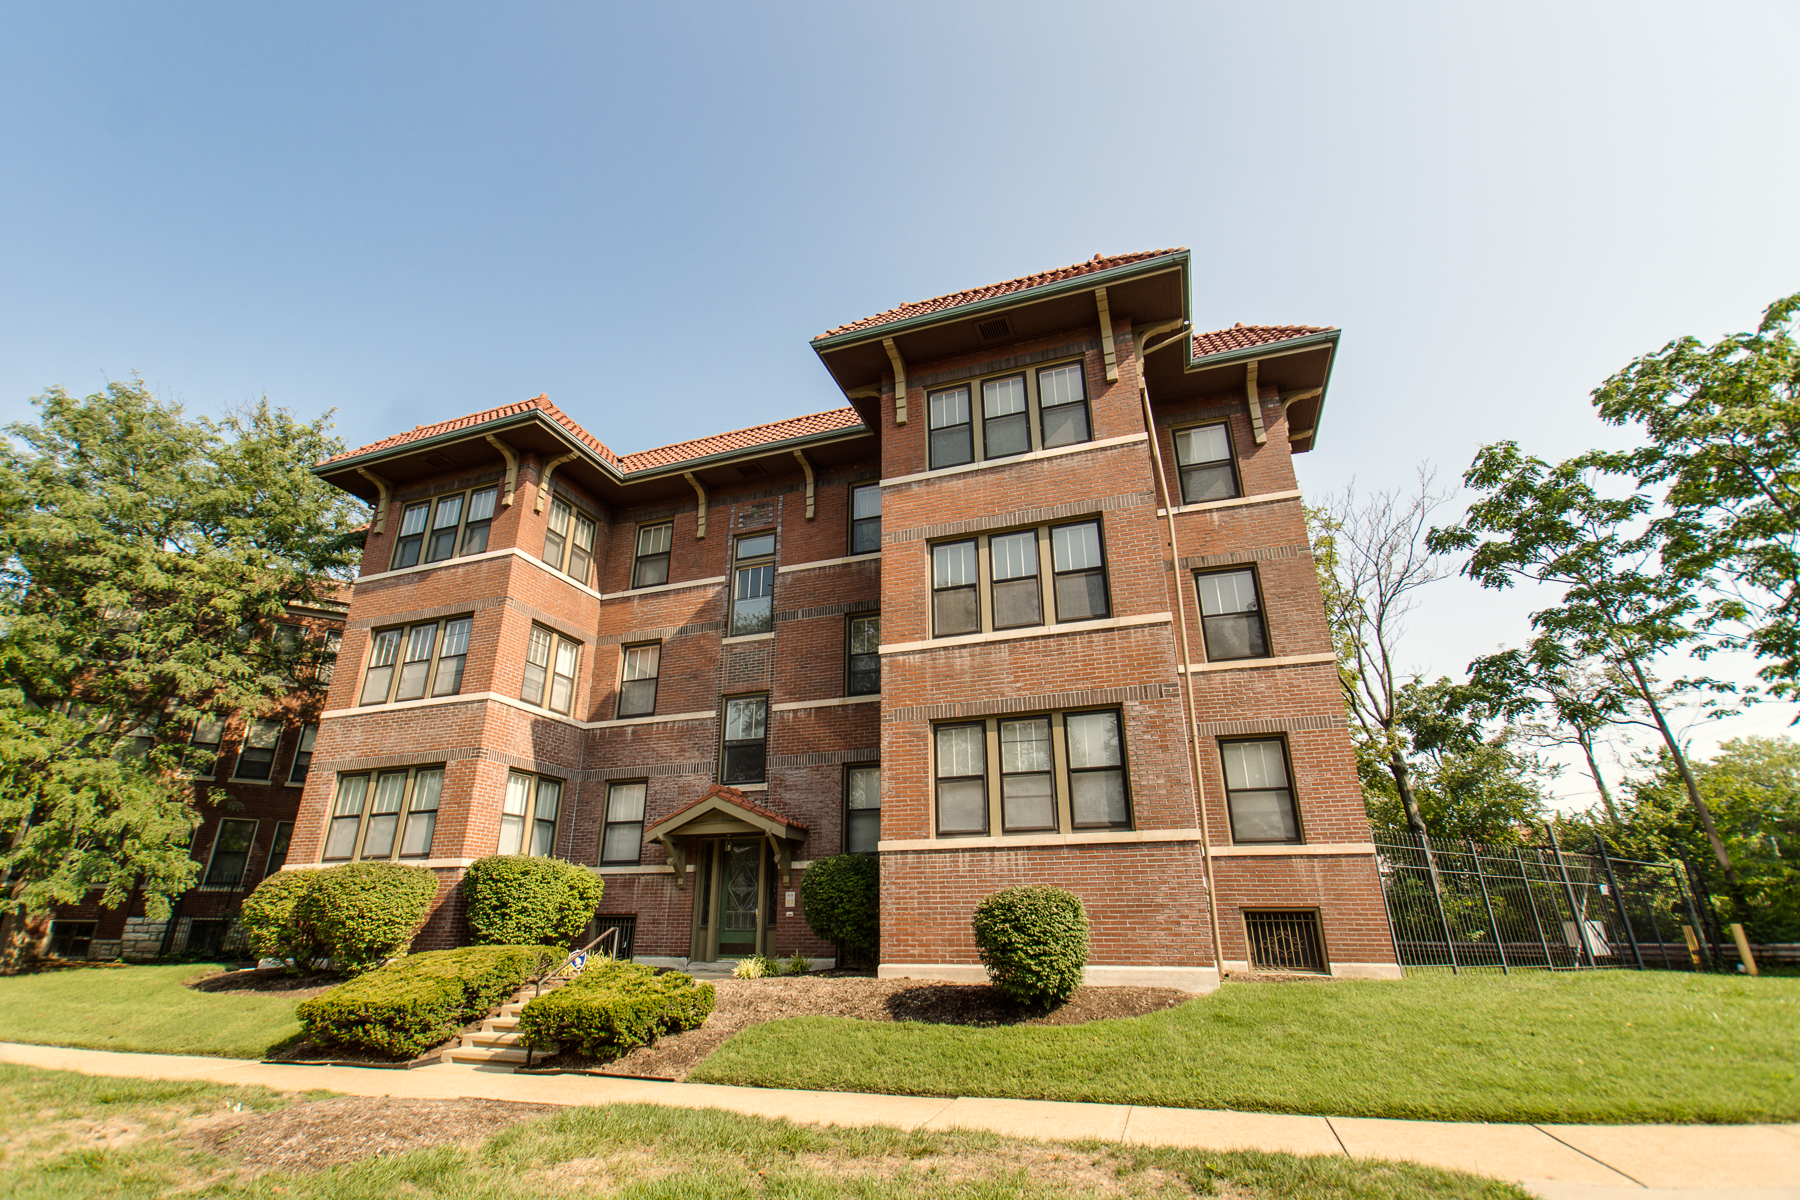 Condominium for Sale at Waterman Blvd 5803 Waterman Blvd #2E St. Louis, Missouri 63112 United States